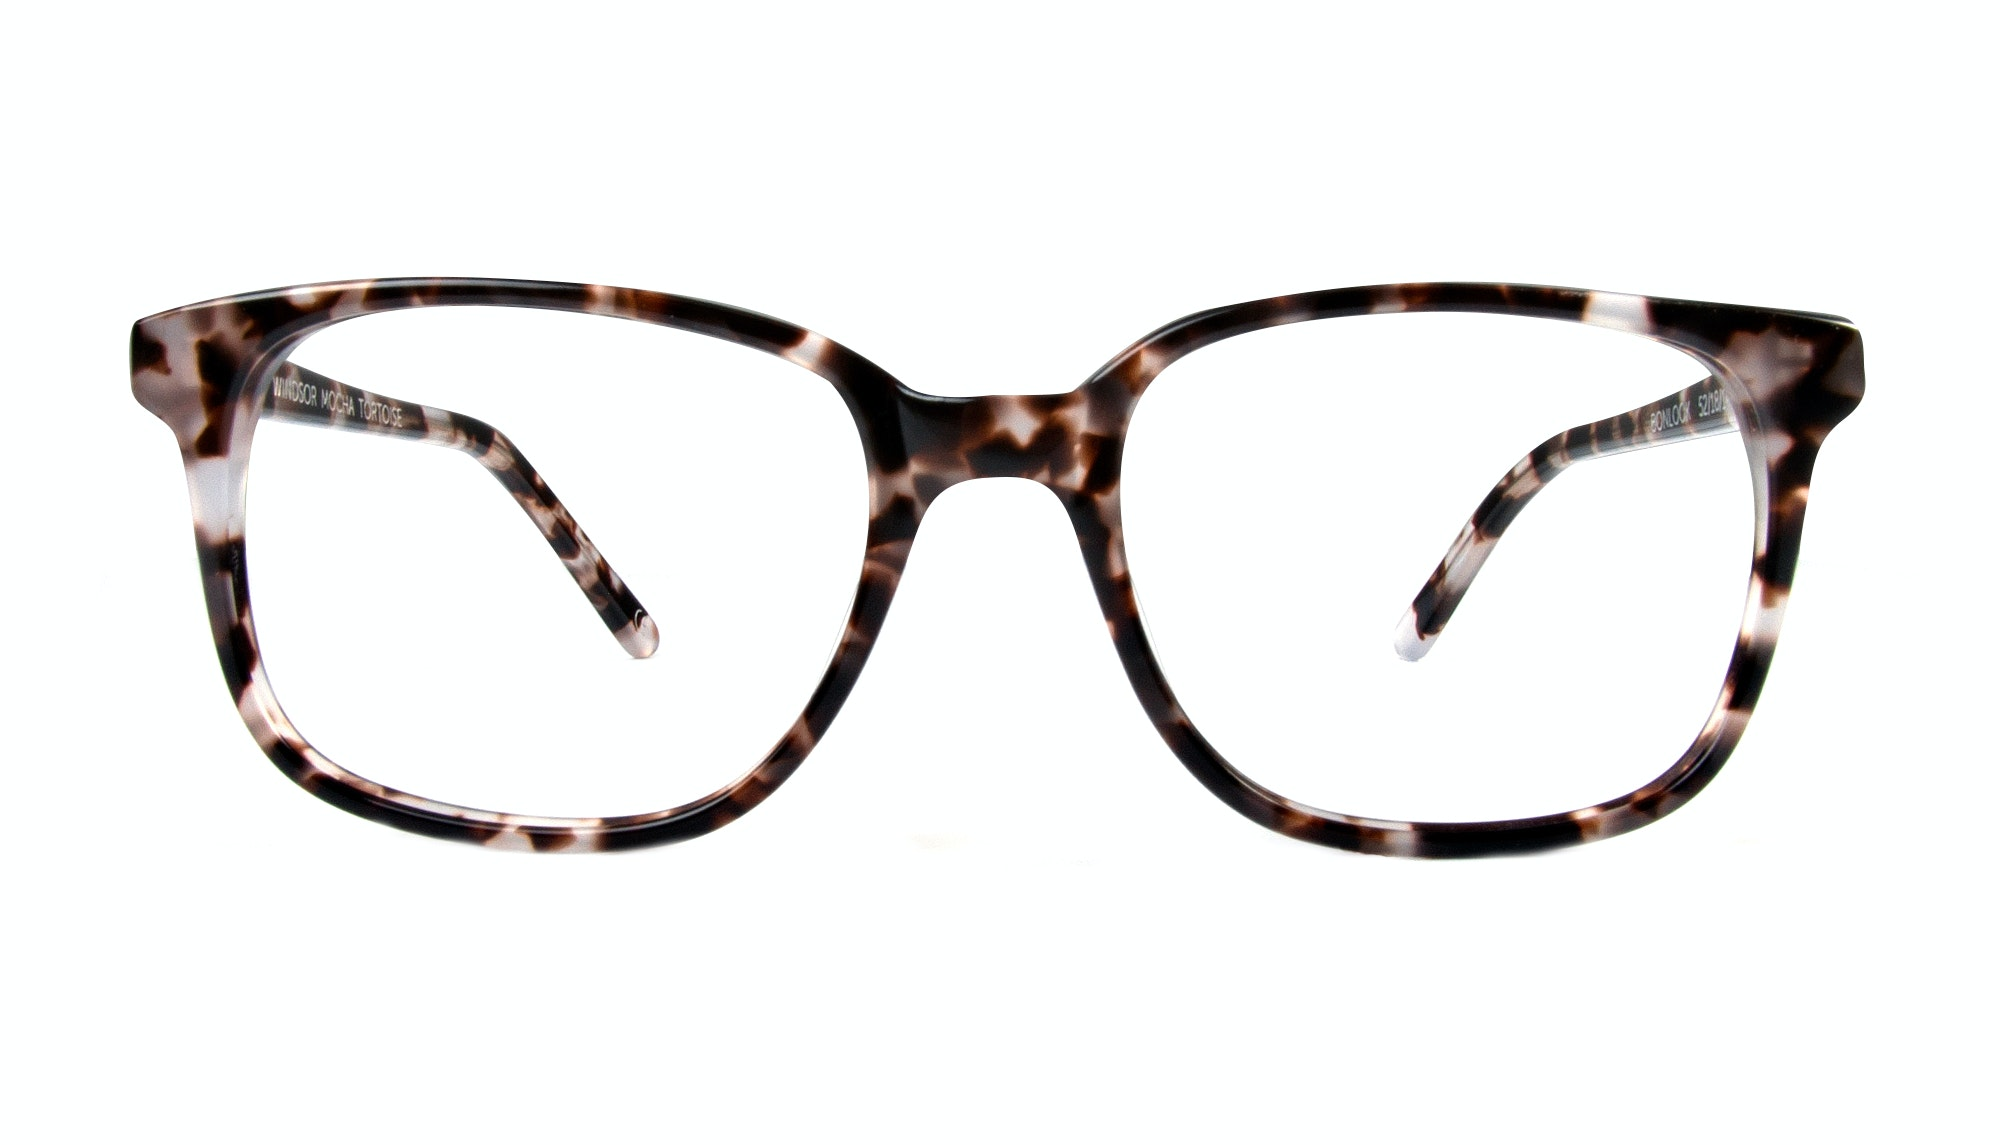 Affordable Fashion Glasses Rectangle Square Eyeglasses Men Women Windsor Mocha Tortoise Front